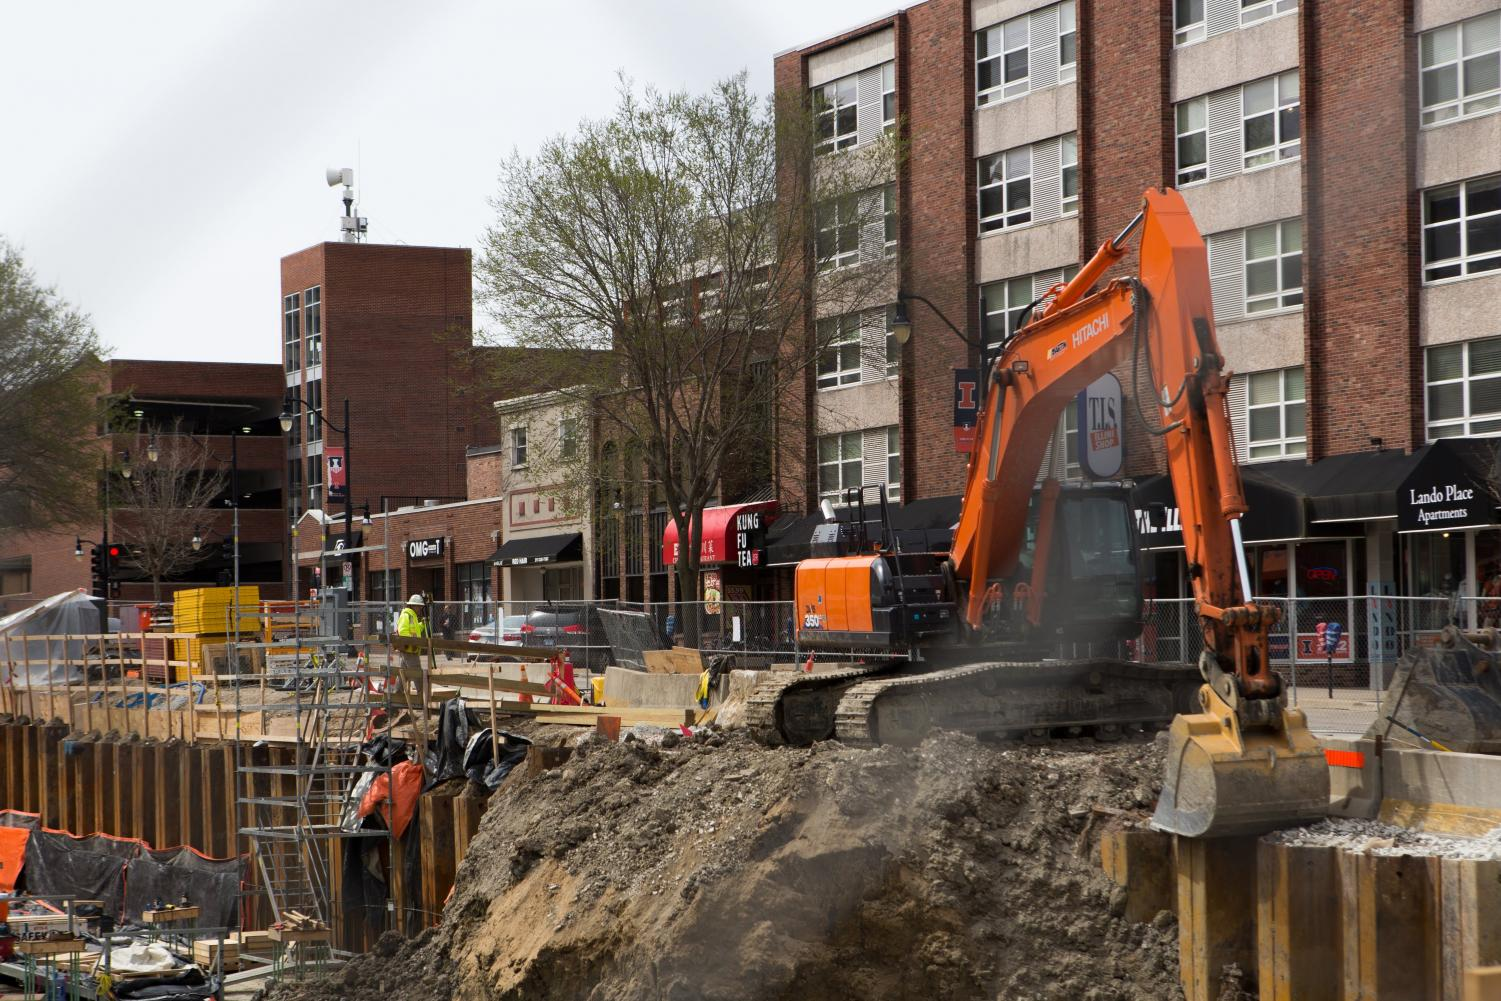 Construction workers build the foundation of the site for a future Target on the corner of Green and Sixth streets in Champaign. Roads will periodically be closed while construction continues.